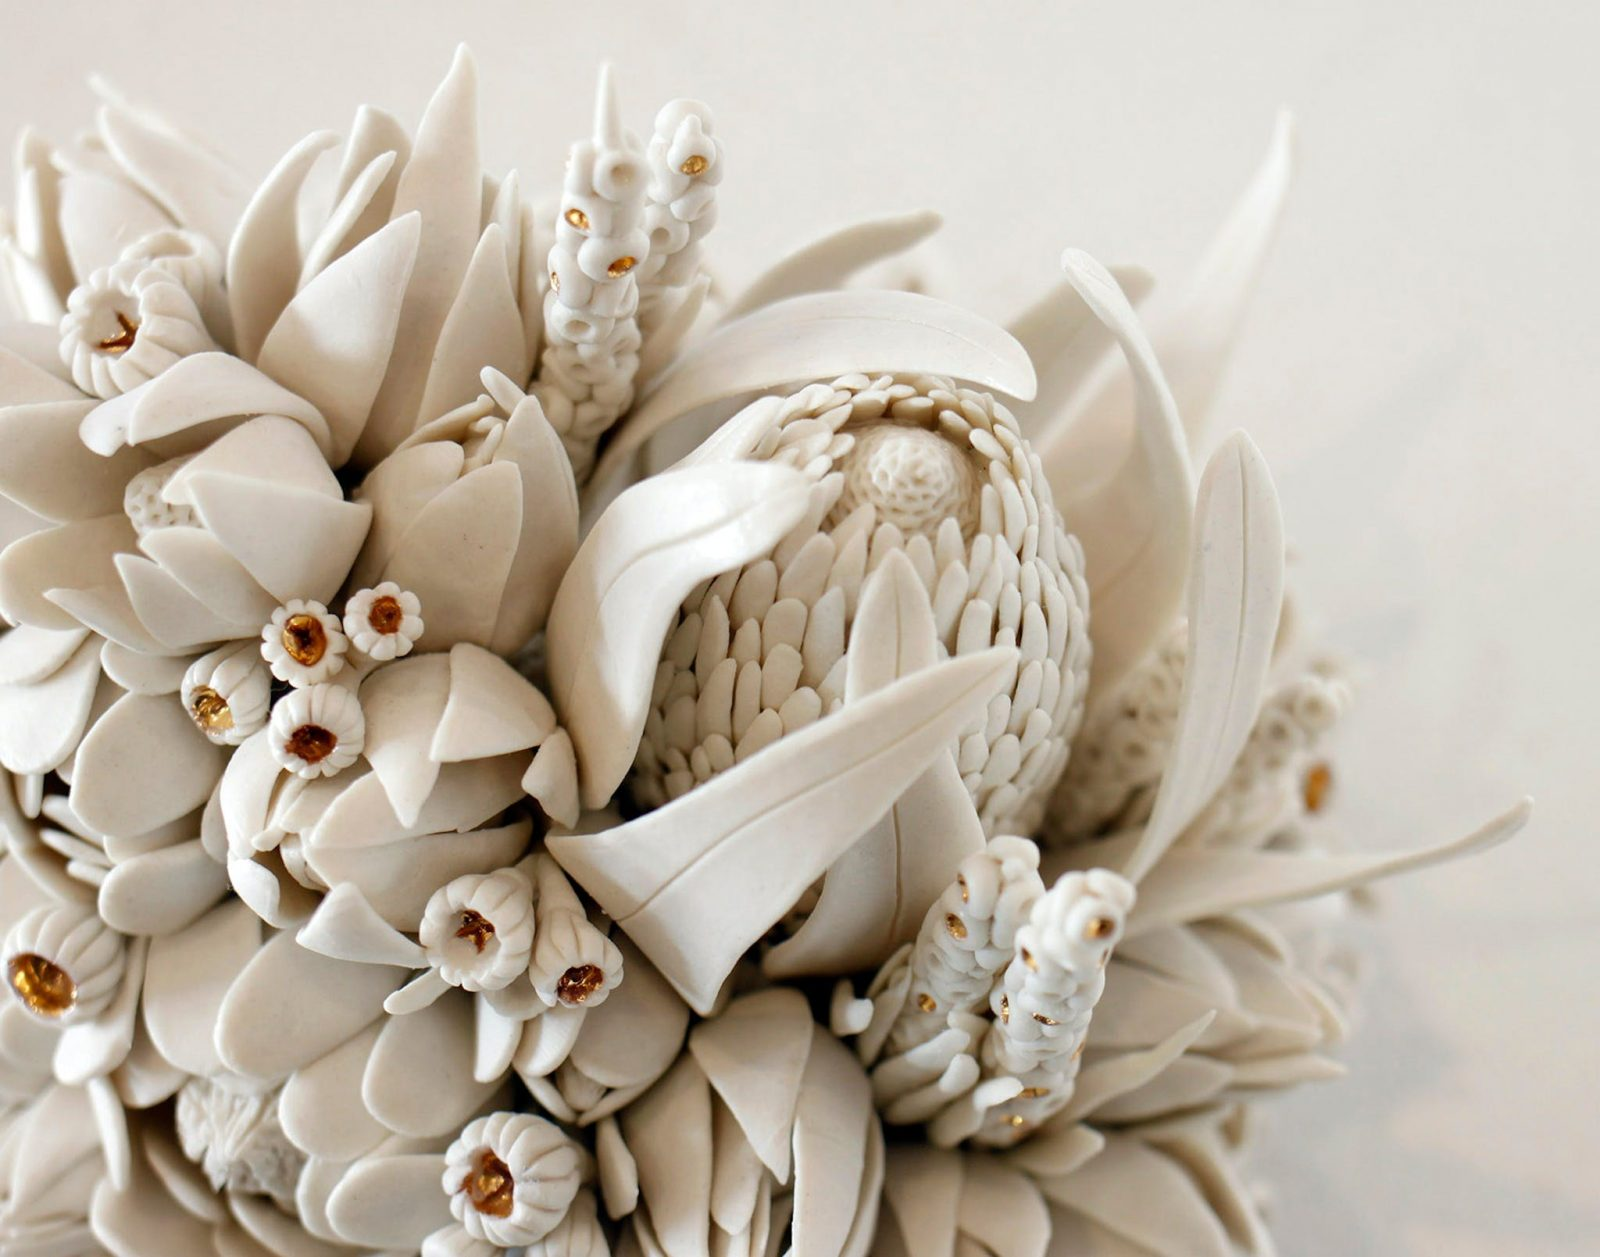 Botanical Gatherings No. 5, Hand built porcelain by Amy Hick